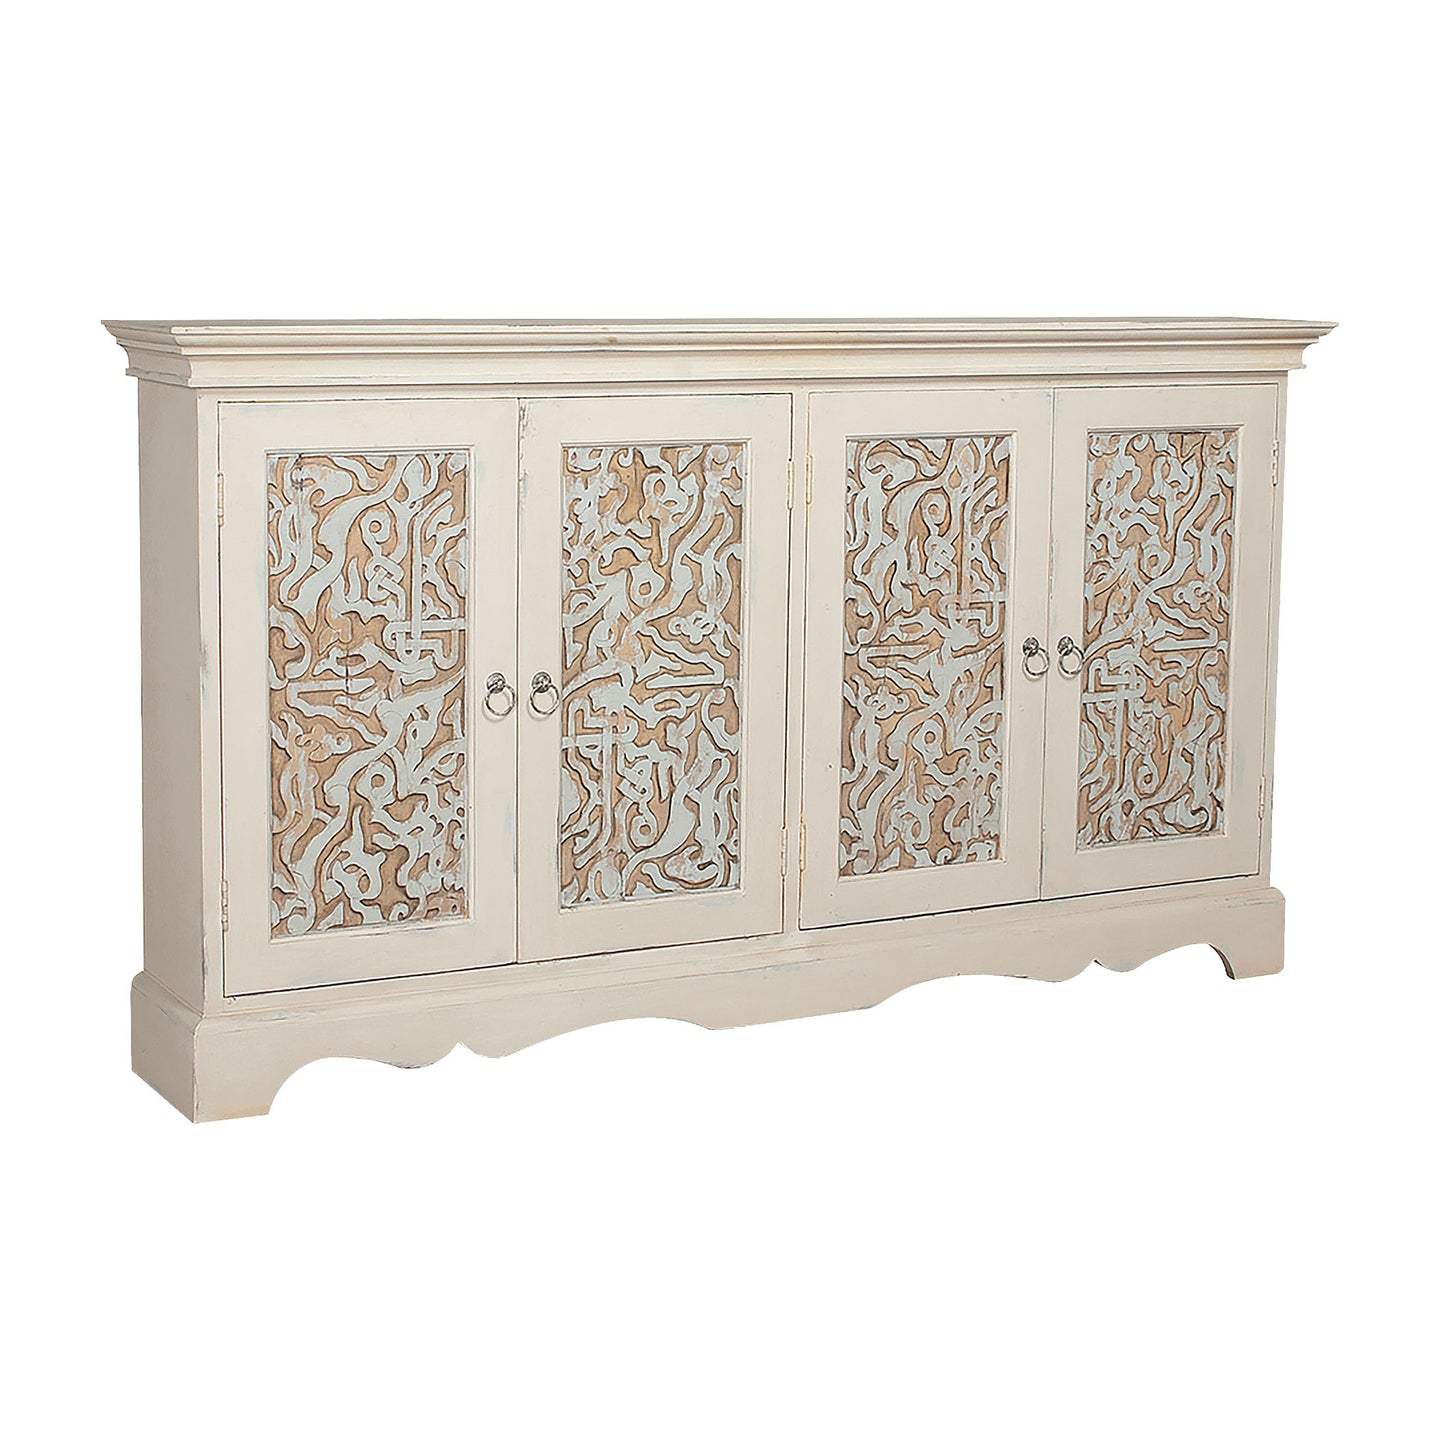 Waterfront 4-Door Cottage Credenza